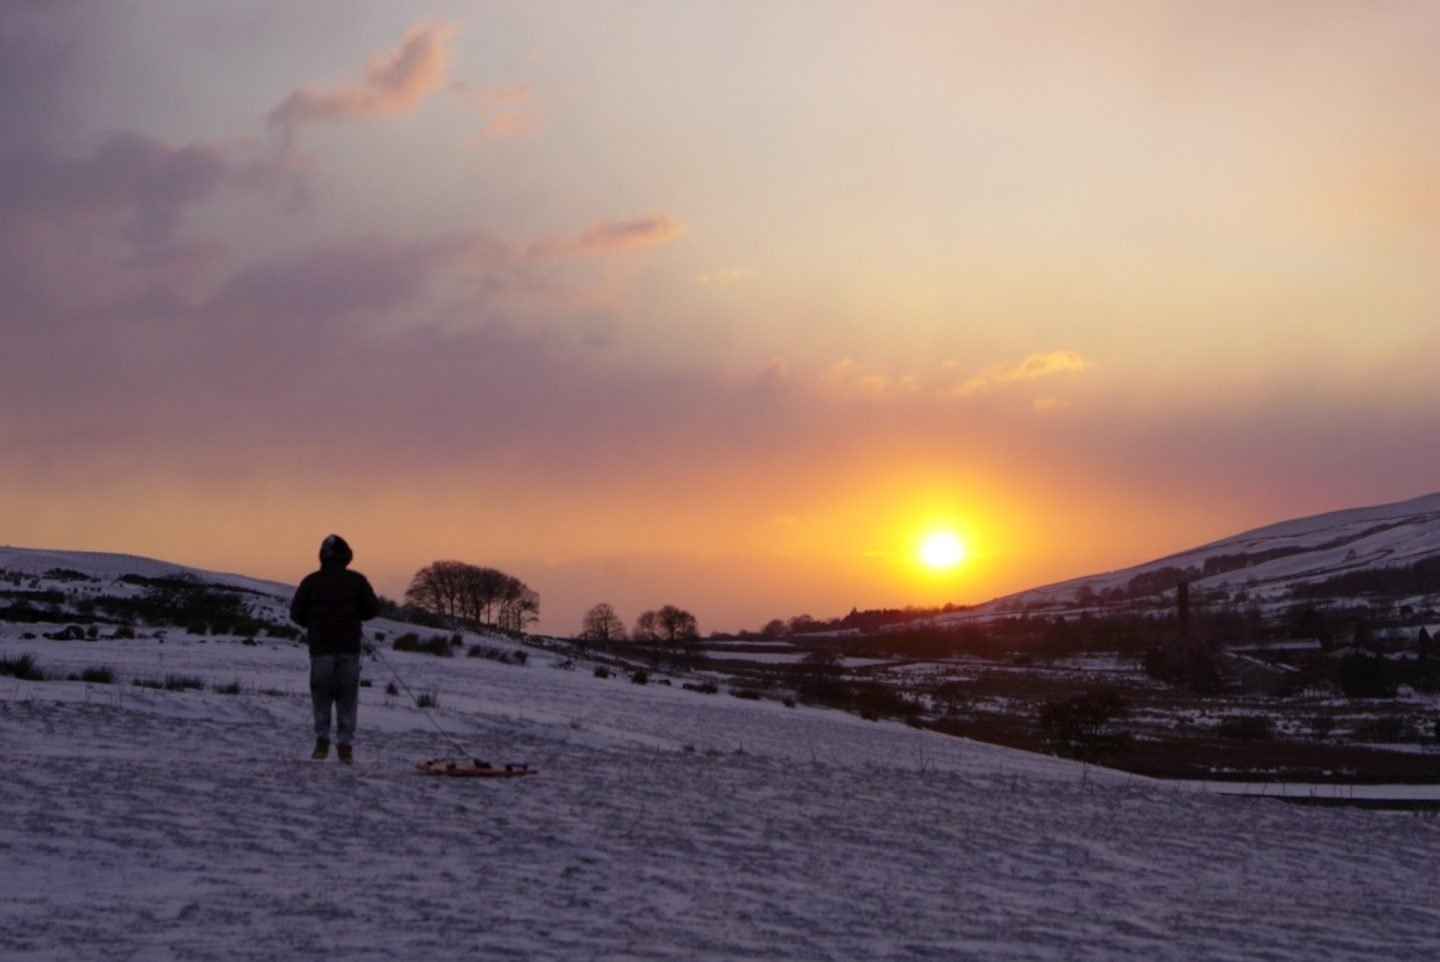 Walking at sunset in the snow www.extraordinarychaos.com